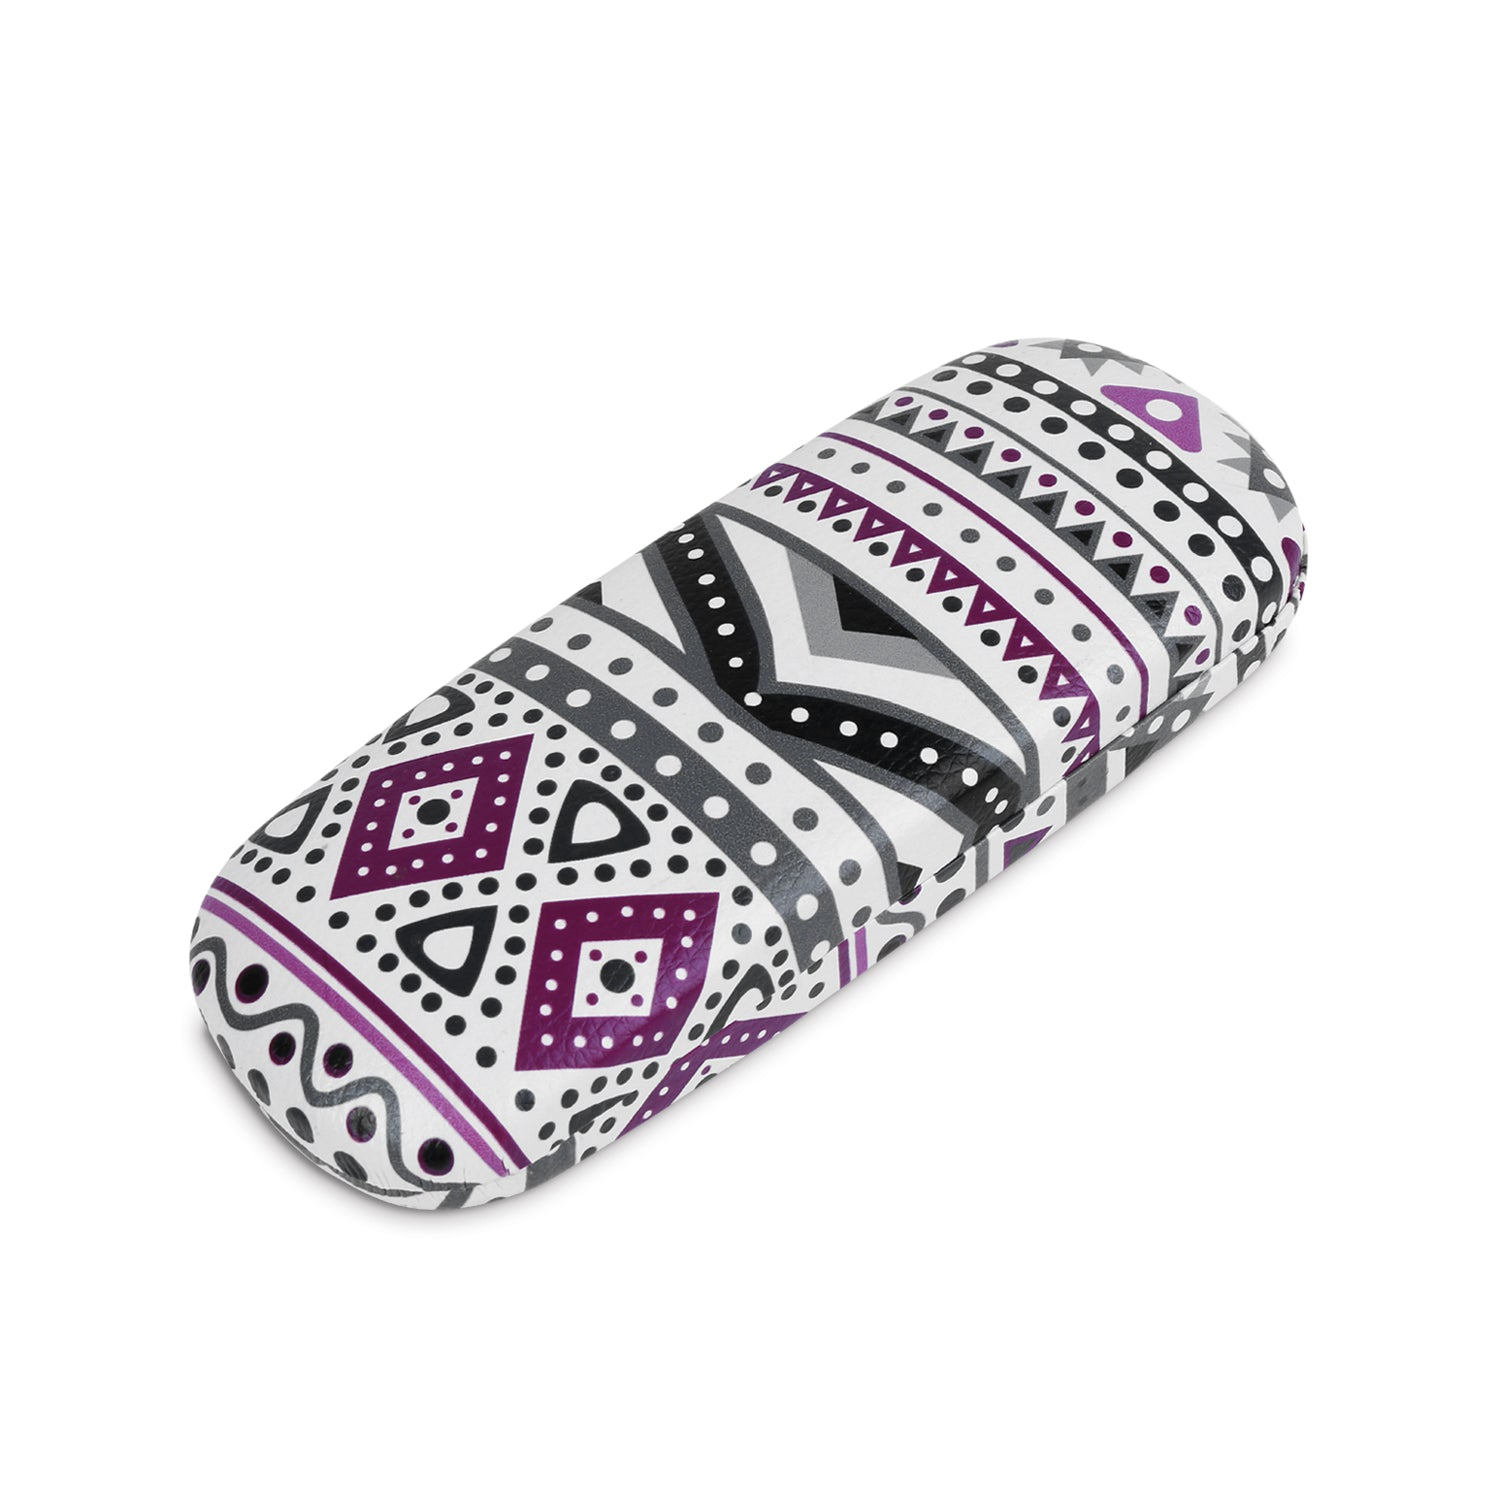 "#EYC-1716 Hardshell leatherette eyewear case with tribal print 6 1/4""W X 2 3/8""D X 1 3/8""H"